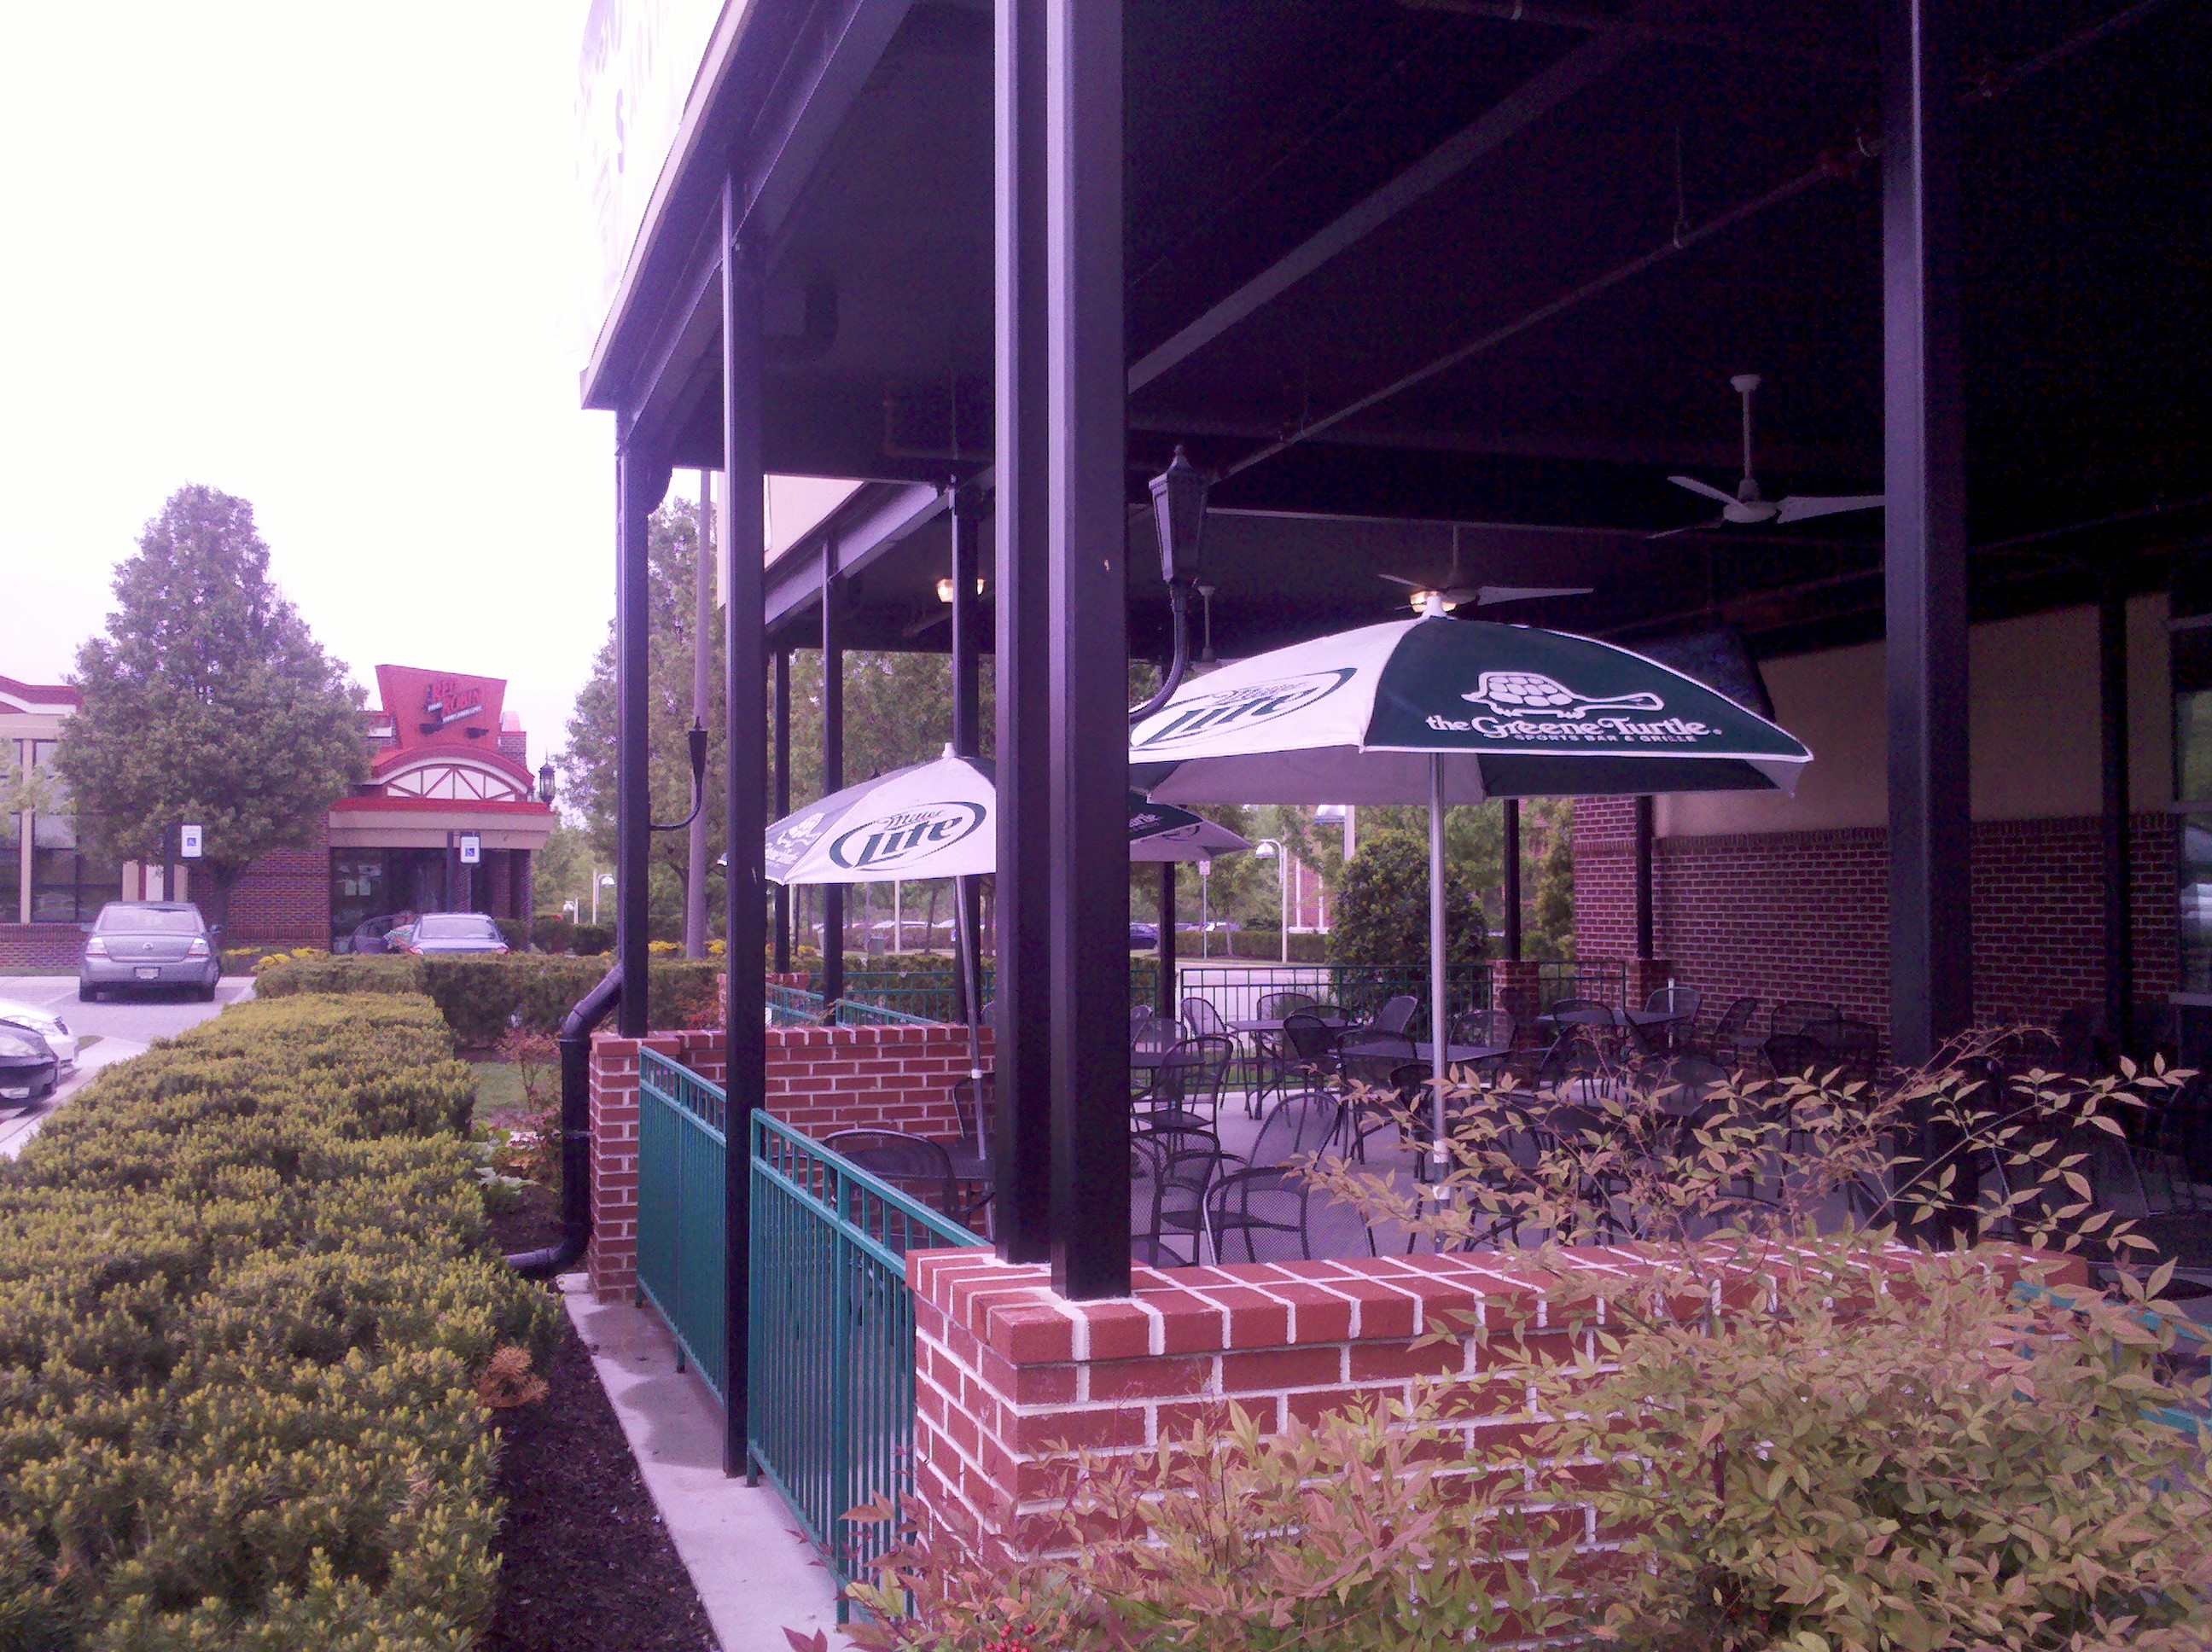 The Greene Turtle--Owings Mills Restaurant Park, Owings Mills, Maryland